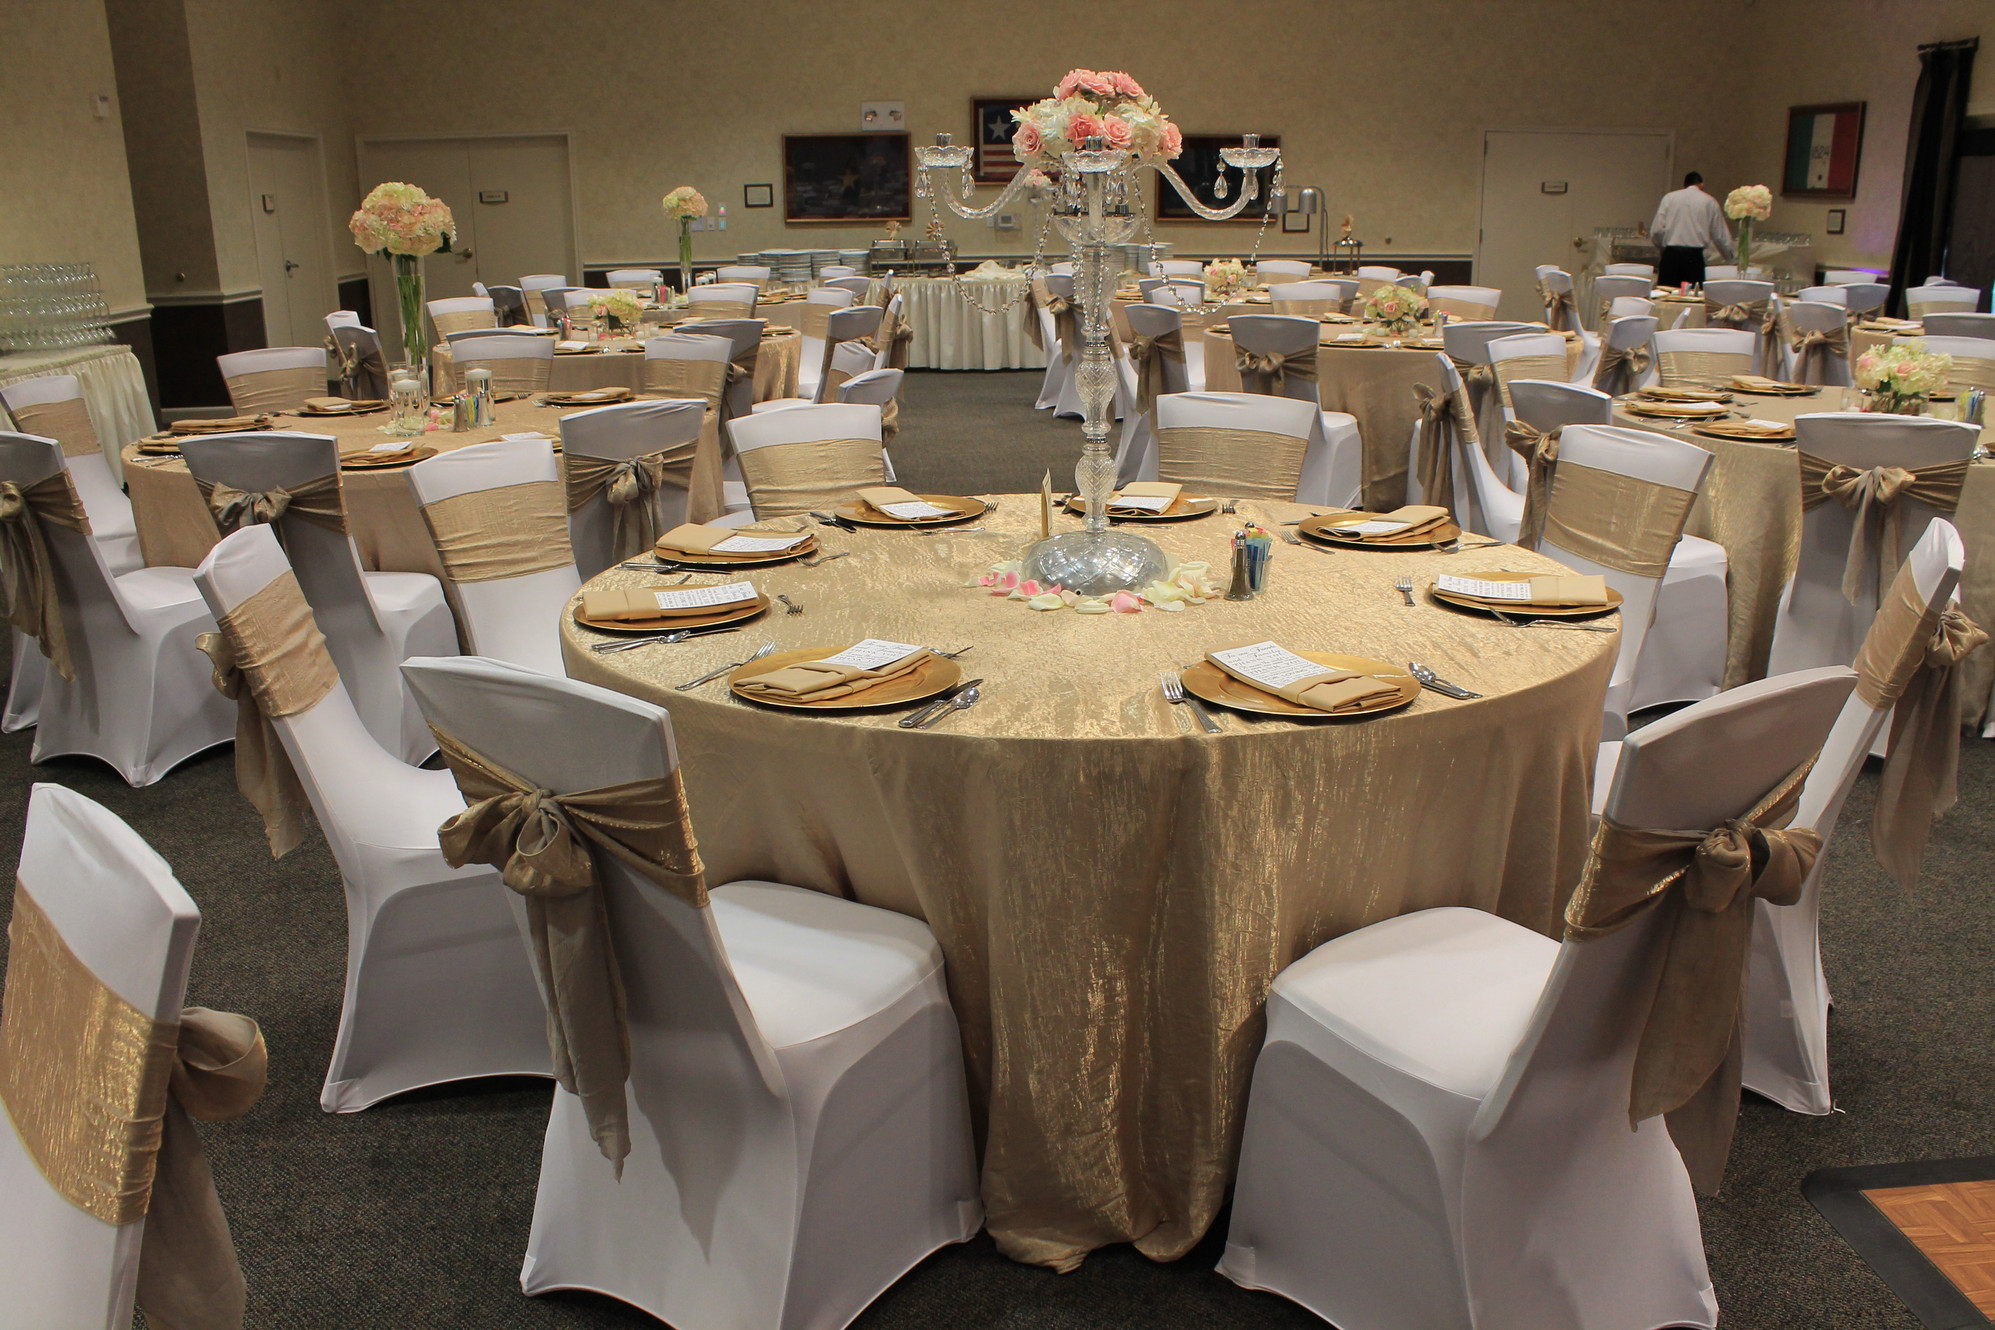 Stupendous Am Linen Rental Faq About Tablecloth And Chair Cover Alphanode Cool Chair Designs And Ideas Alphanodeonline